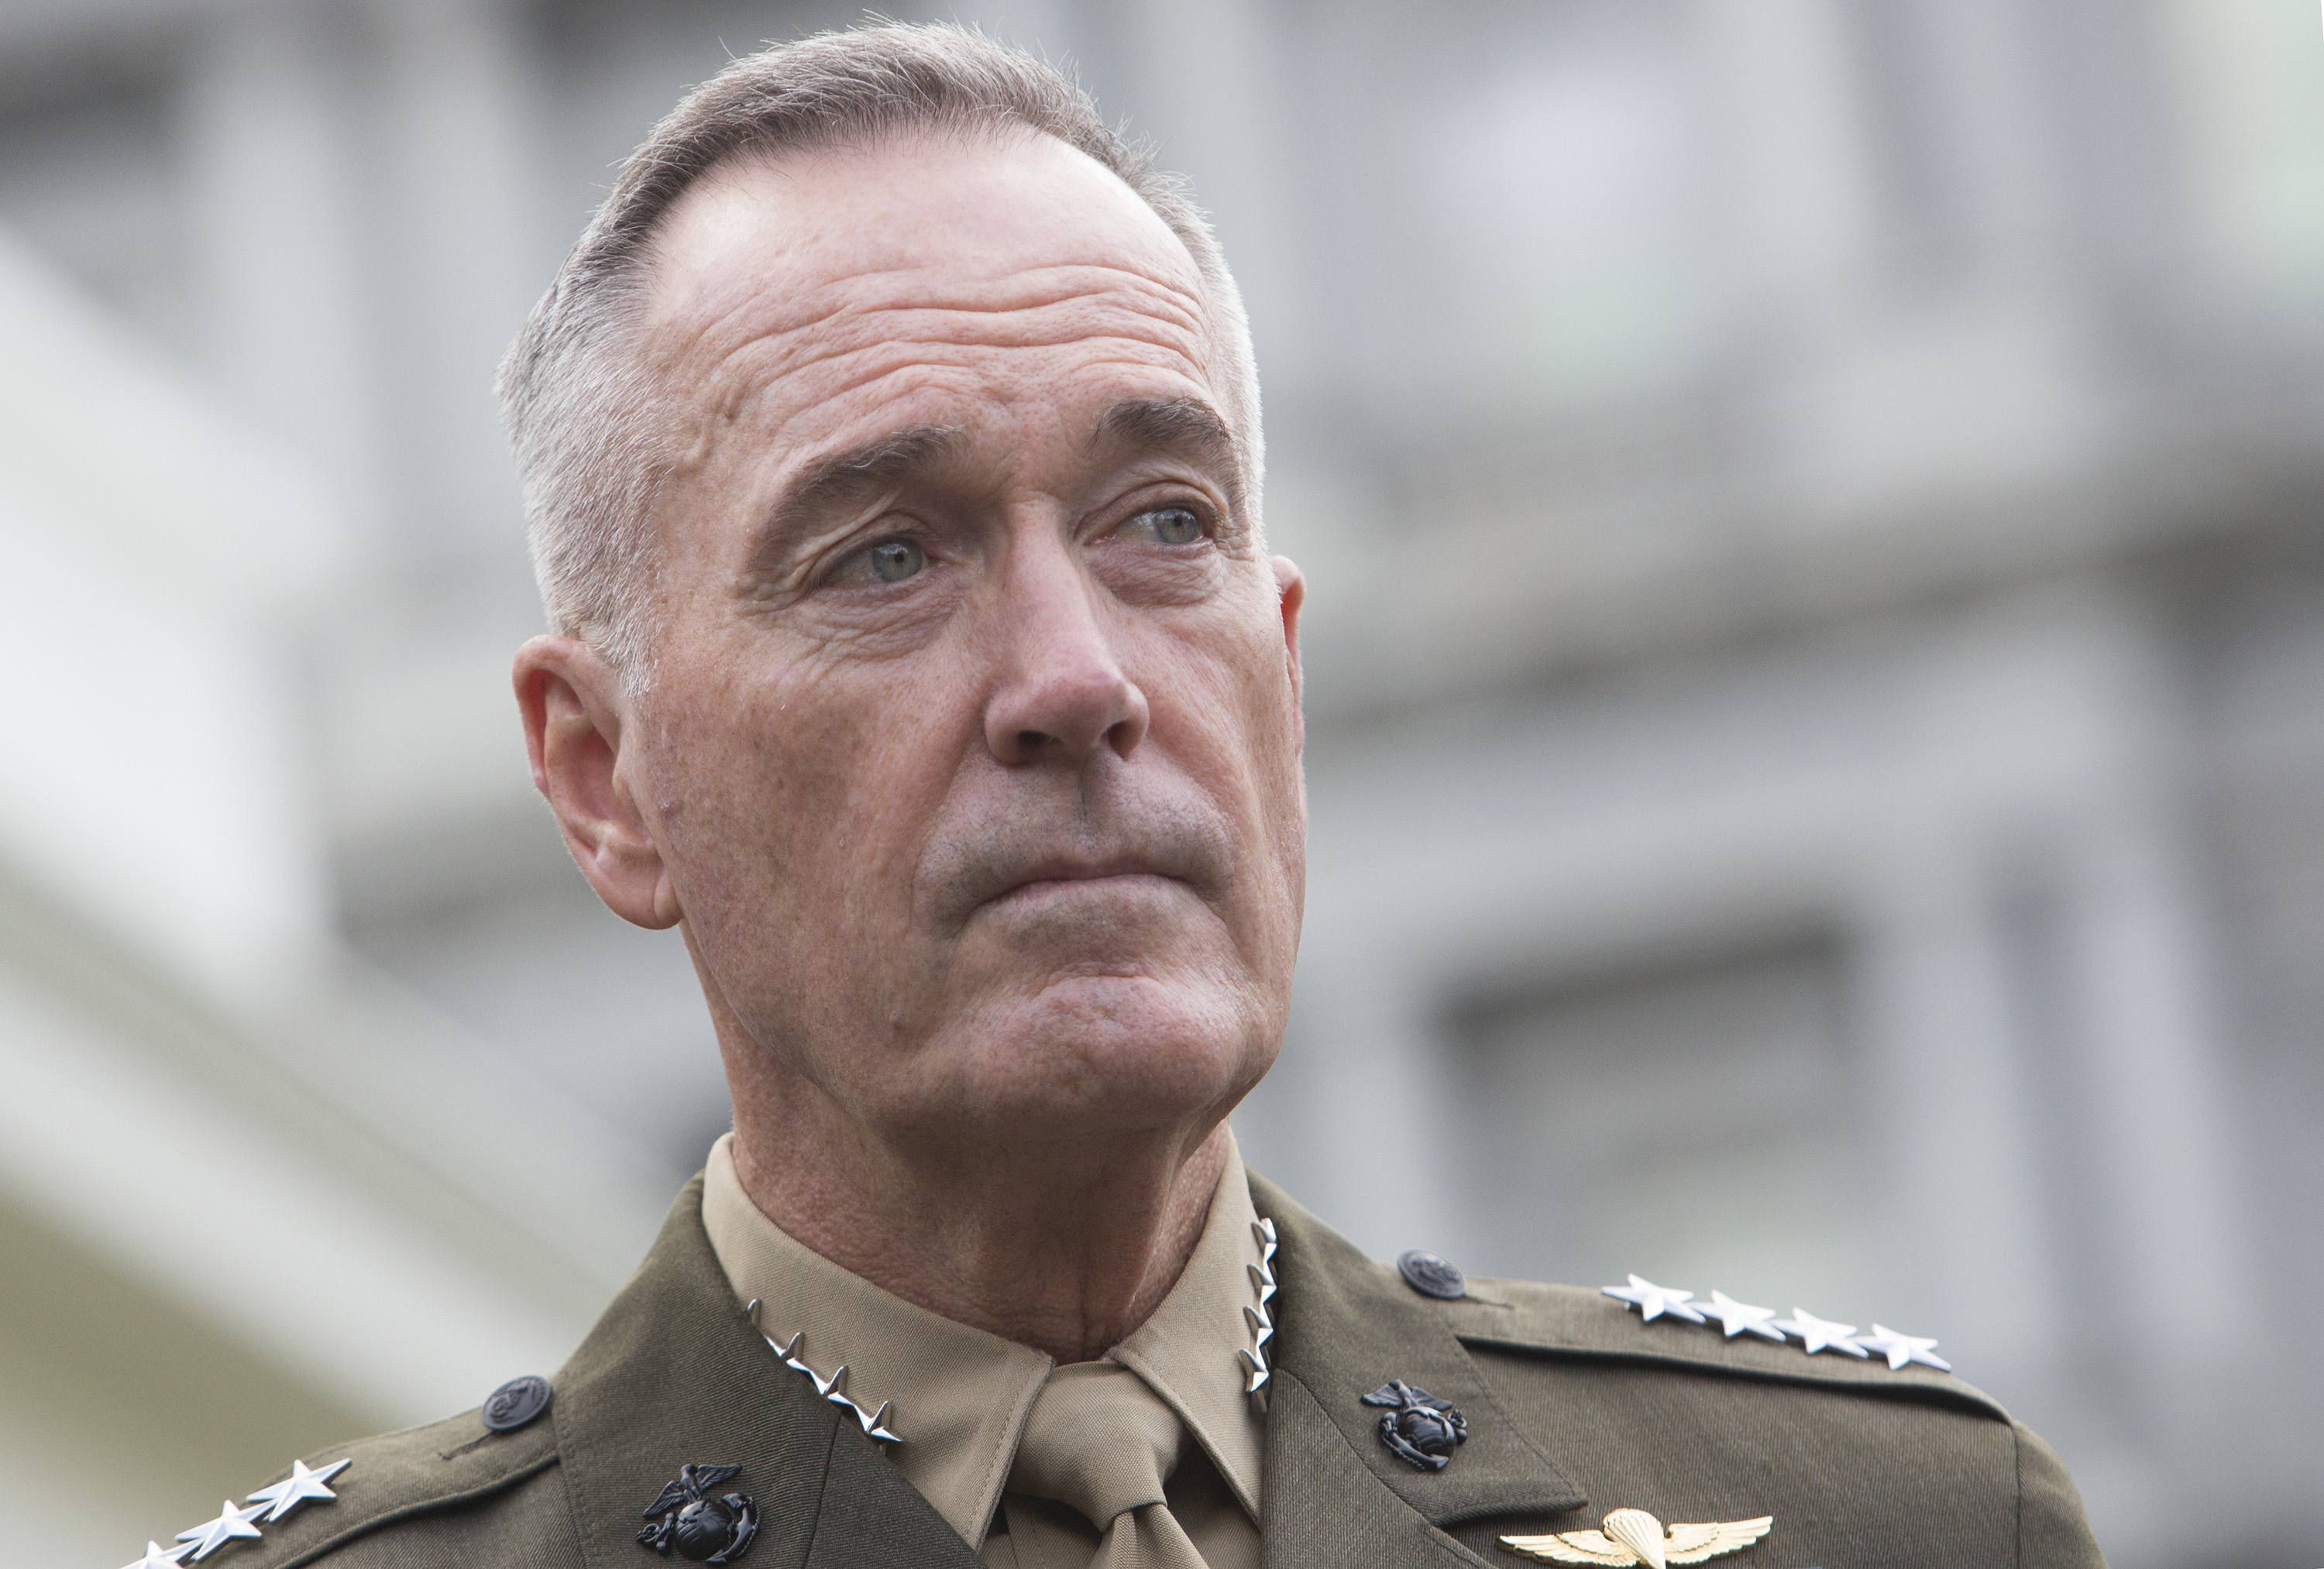 Chairman of the Joint Chiefs of Staff Joseph Dunford at the White House on Sept. 3, 2017.